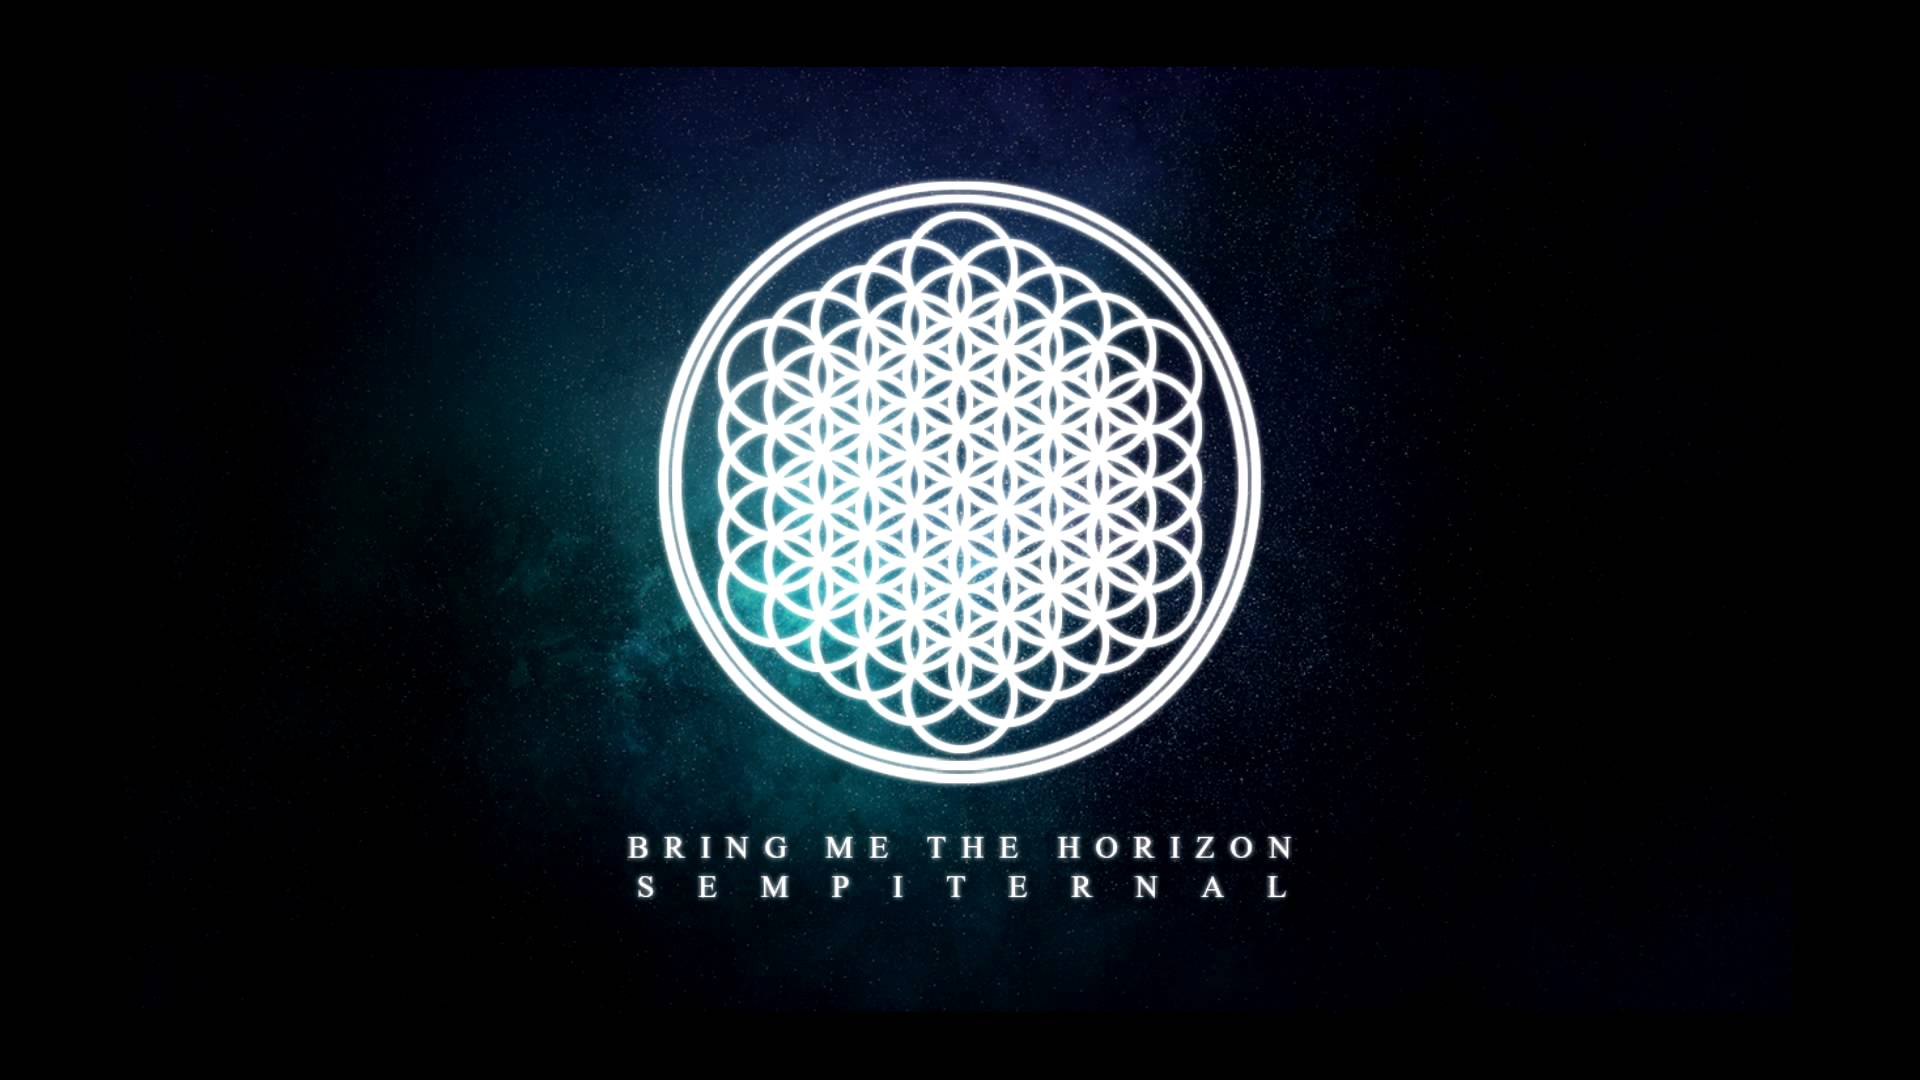 Bring Me The Horizon - And The Snakes Start To Sing [HD] - YouTube